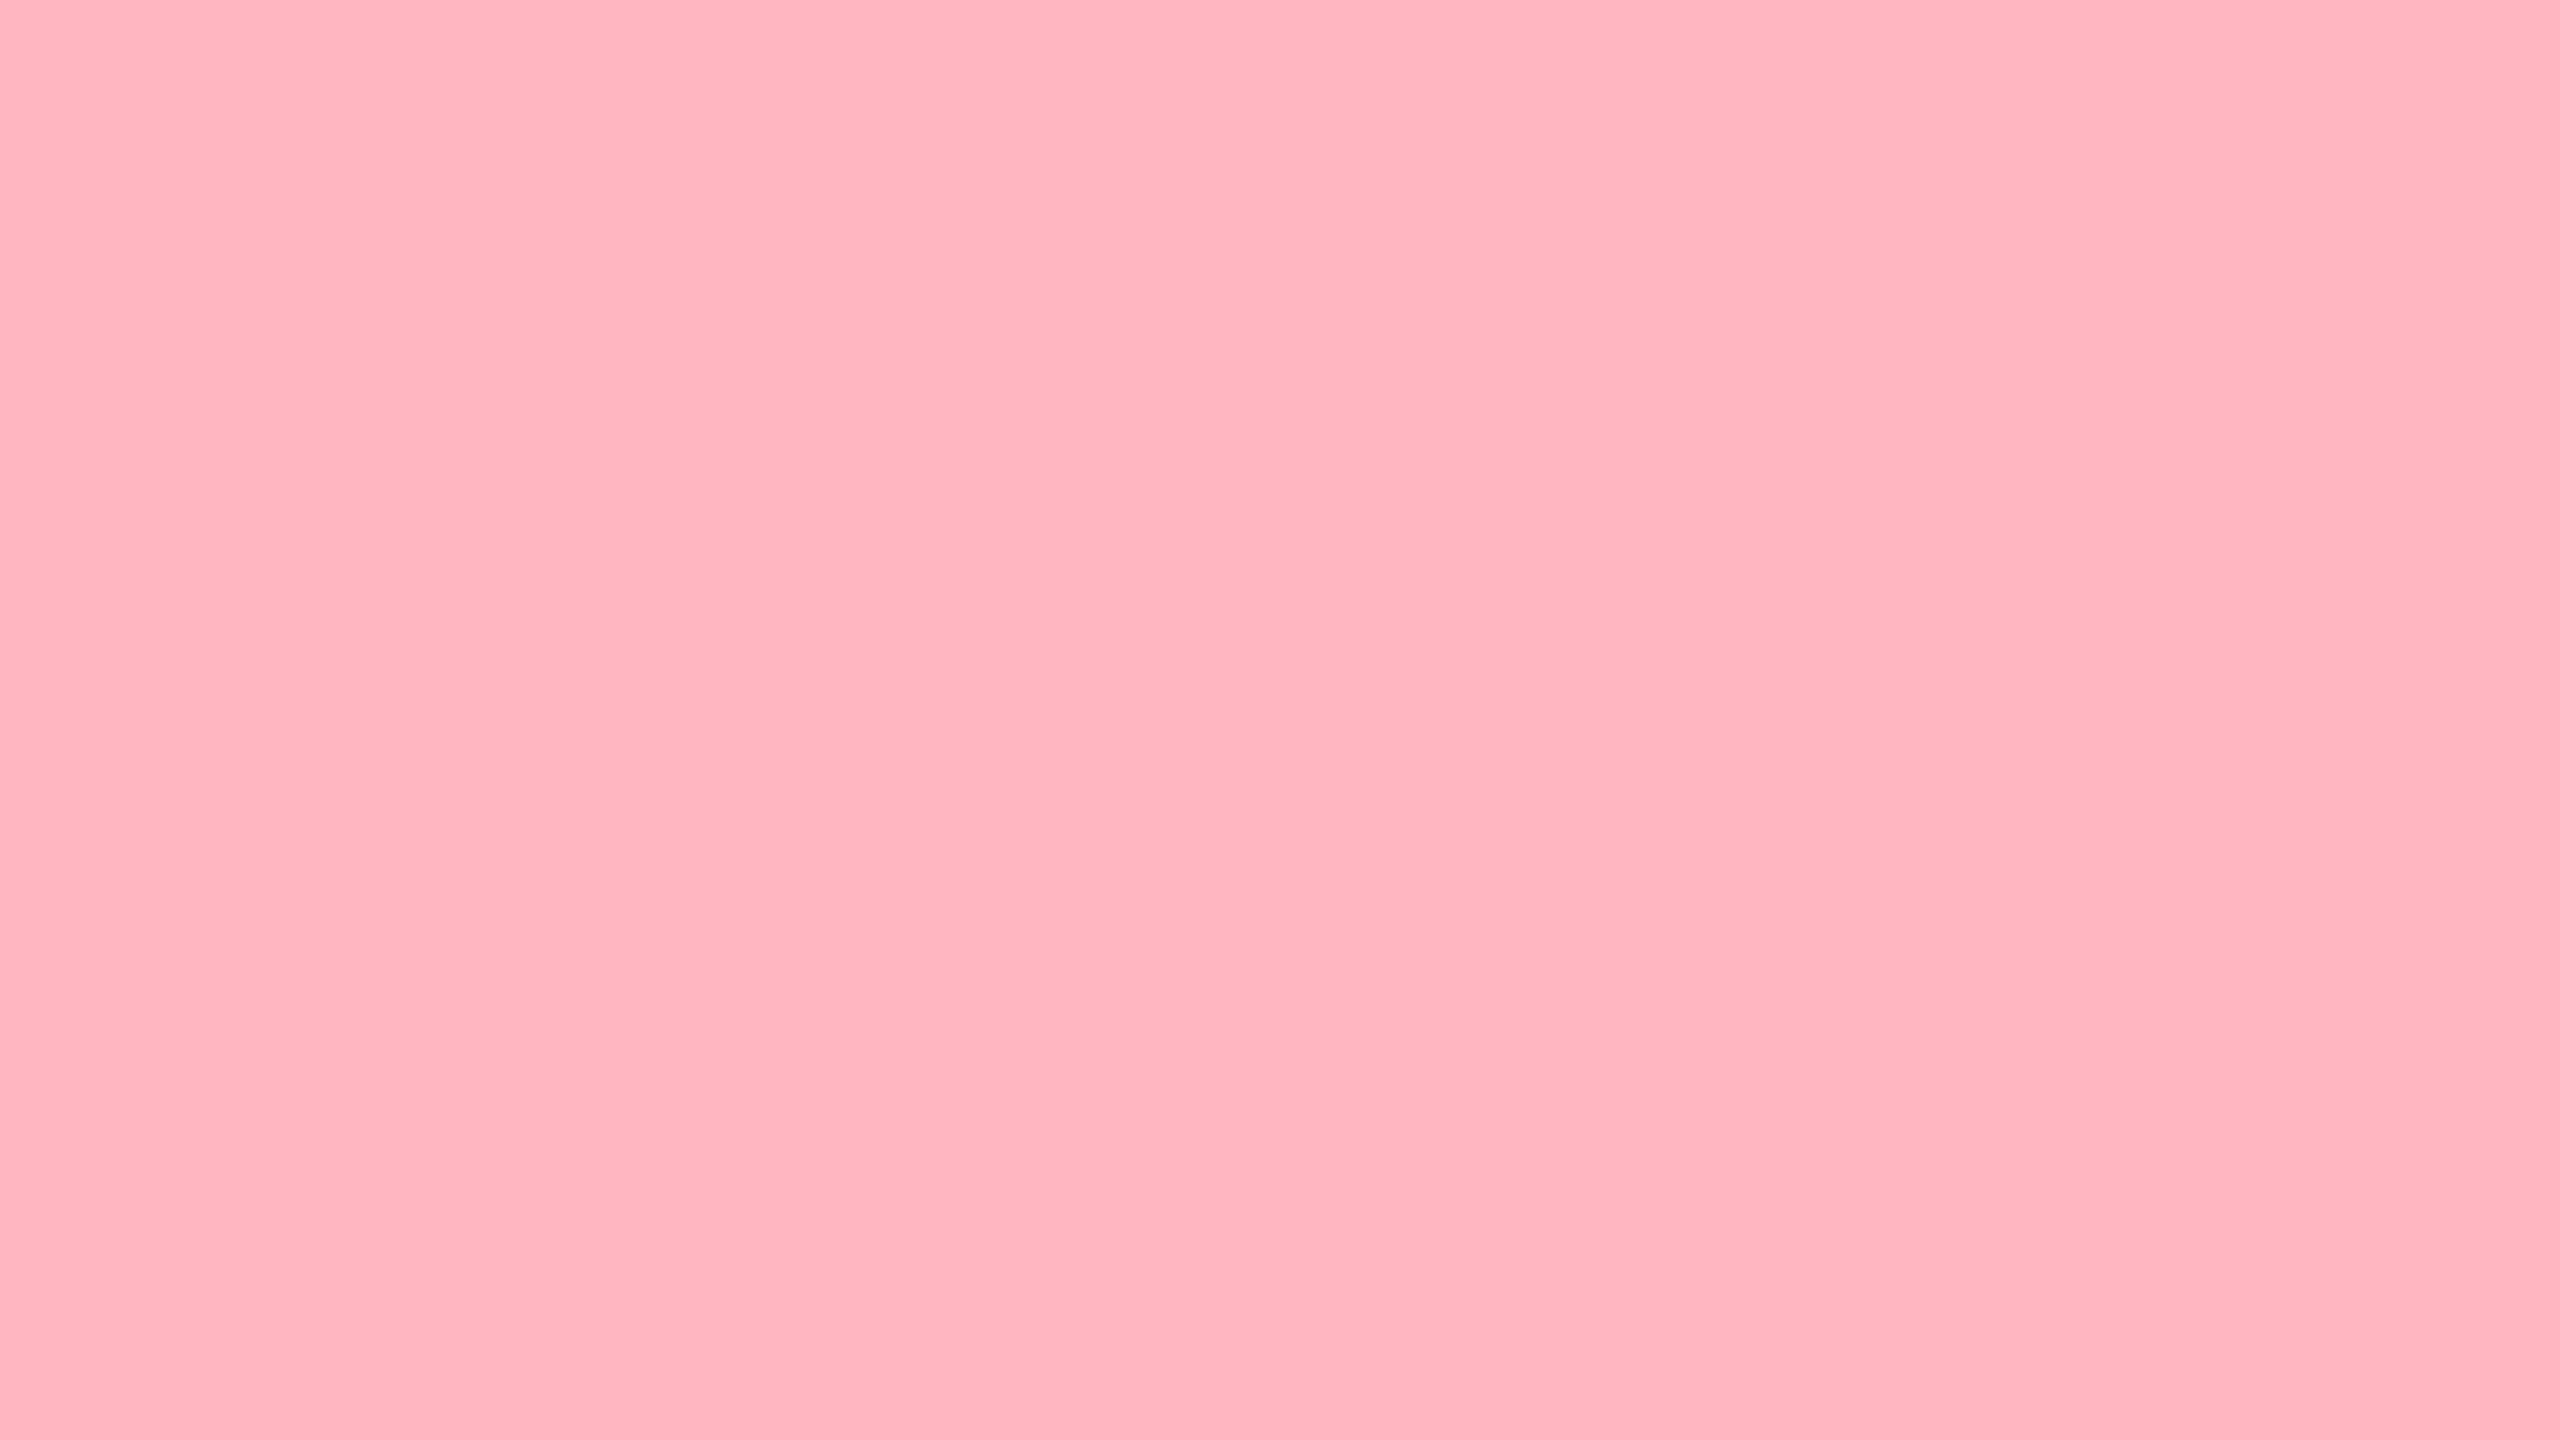 Pics Photos   Light Pink Wallpapers 2560x1440 Light Pink Solid 2560x1440